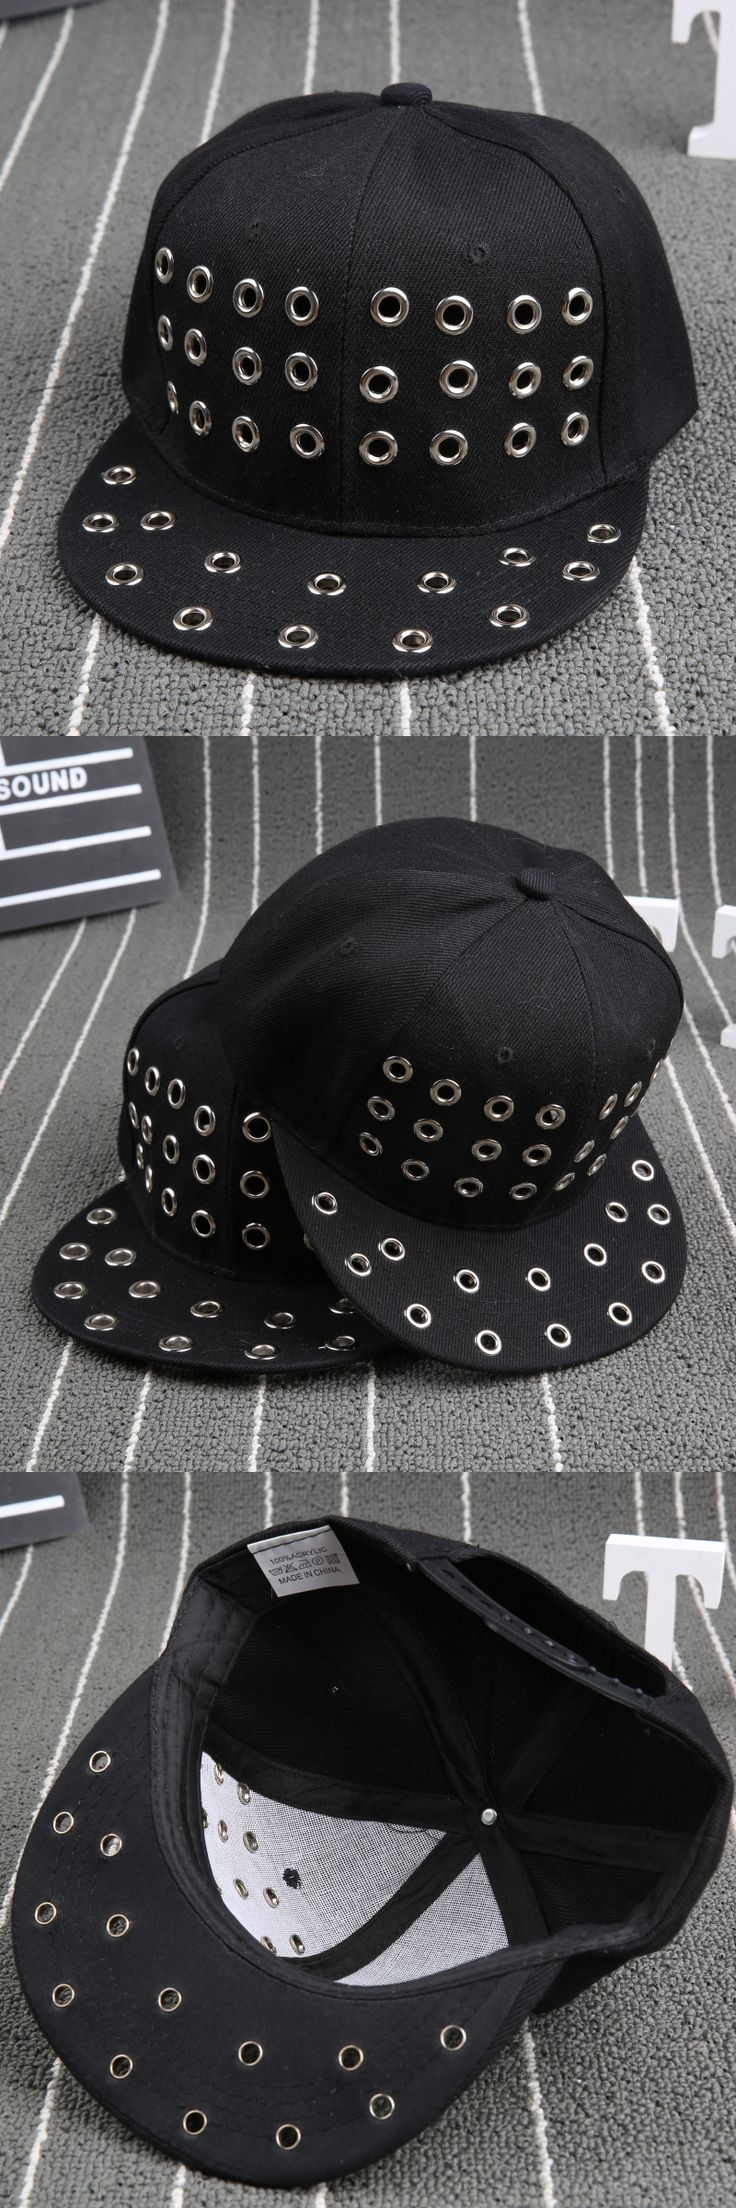 Cool Sold Black Kids Baseball Caps Alternative rivets Hip hop Cap Snapback Hats Boys Girls Peaked cap Parent-child caps